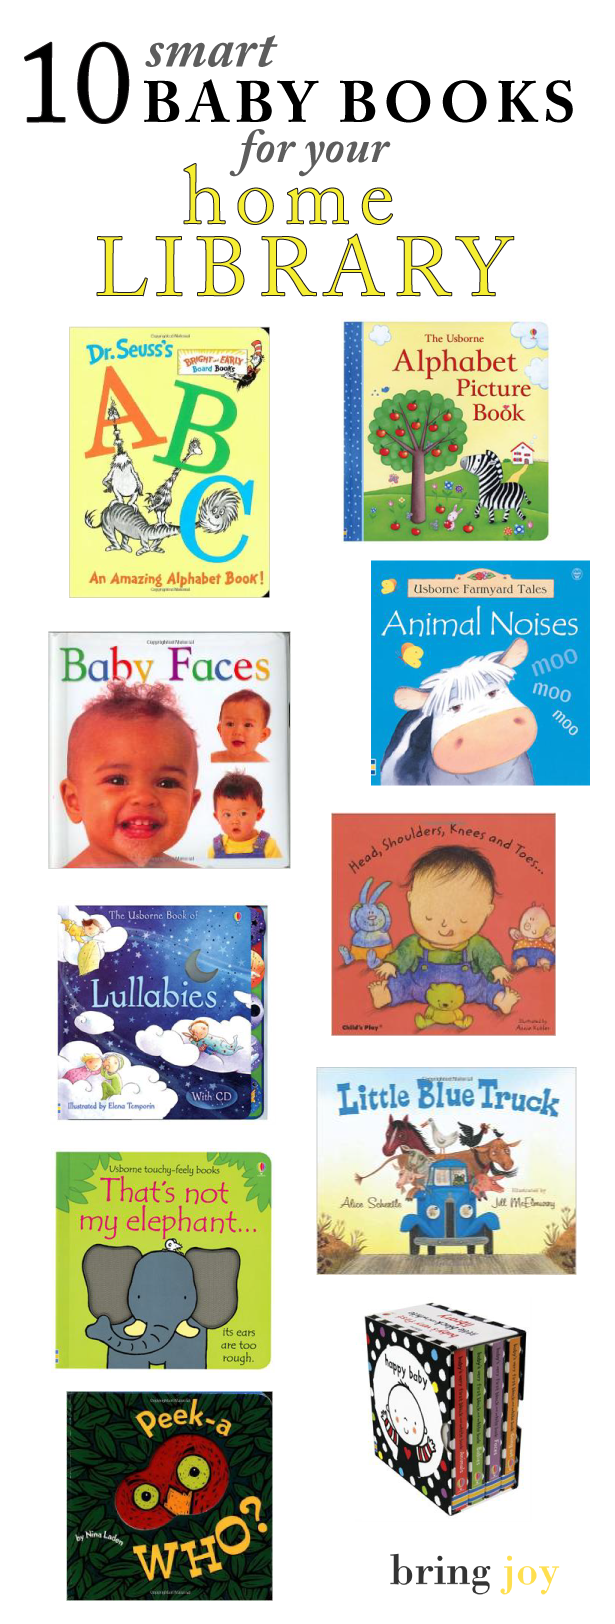 10 smart essential baby books worth owning // bring-joy.com #books #parenting #baby